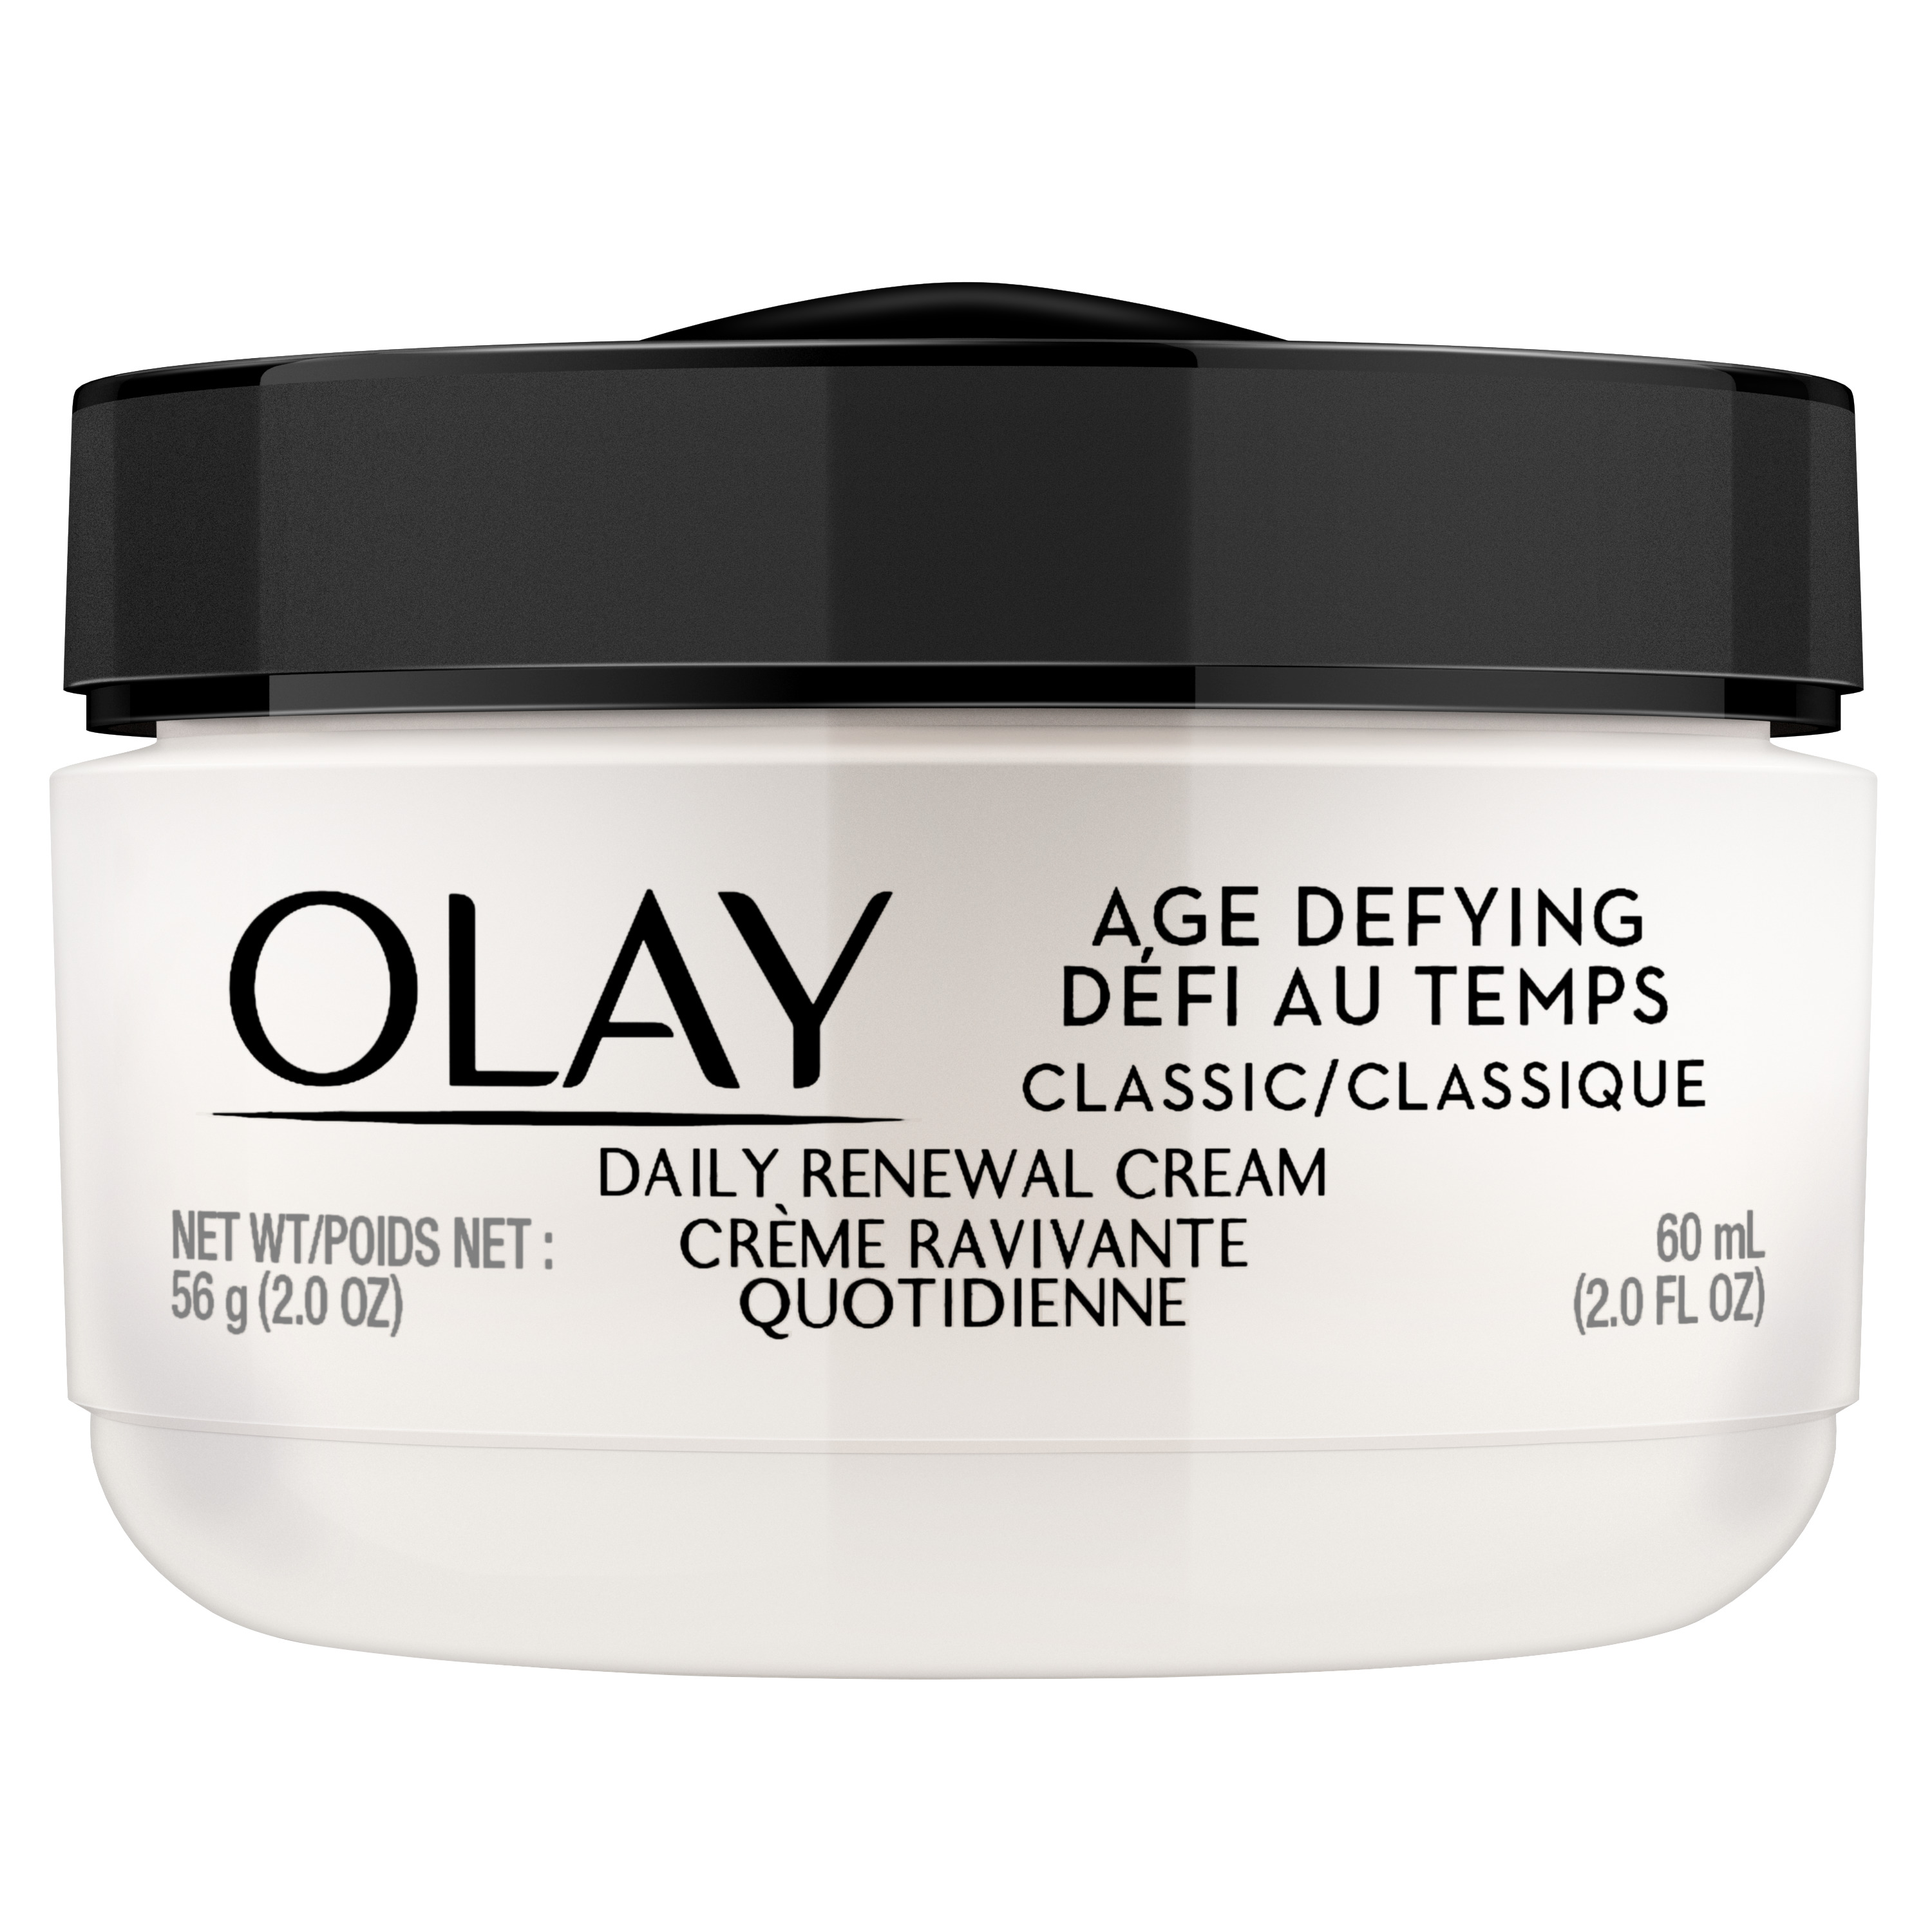 Olay Age Defying Classic Daily Renewal Cream, Face Moisturizer, 2.0 fl oz